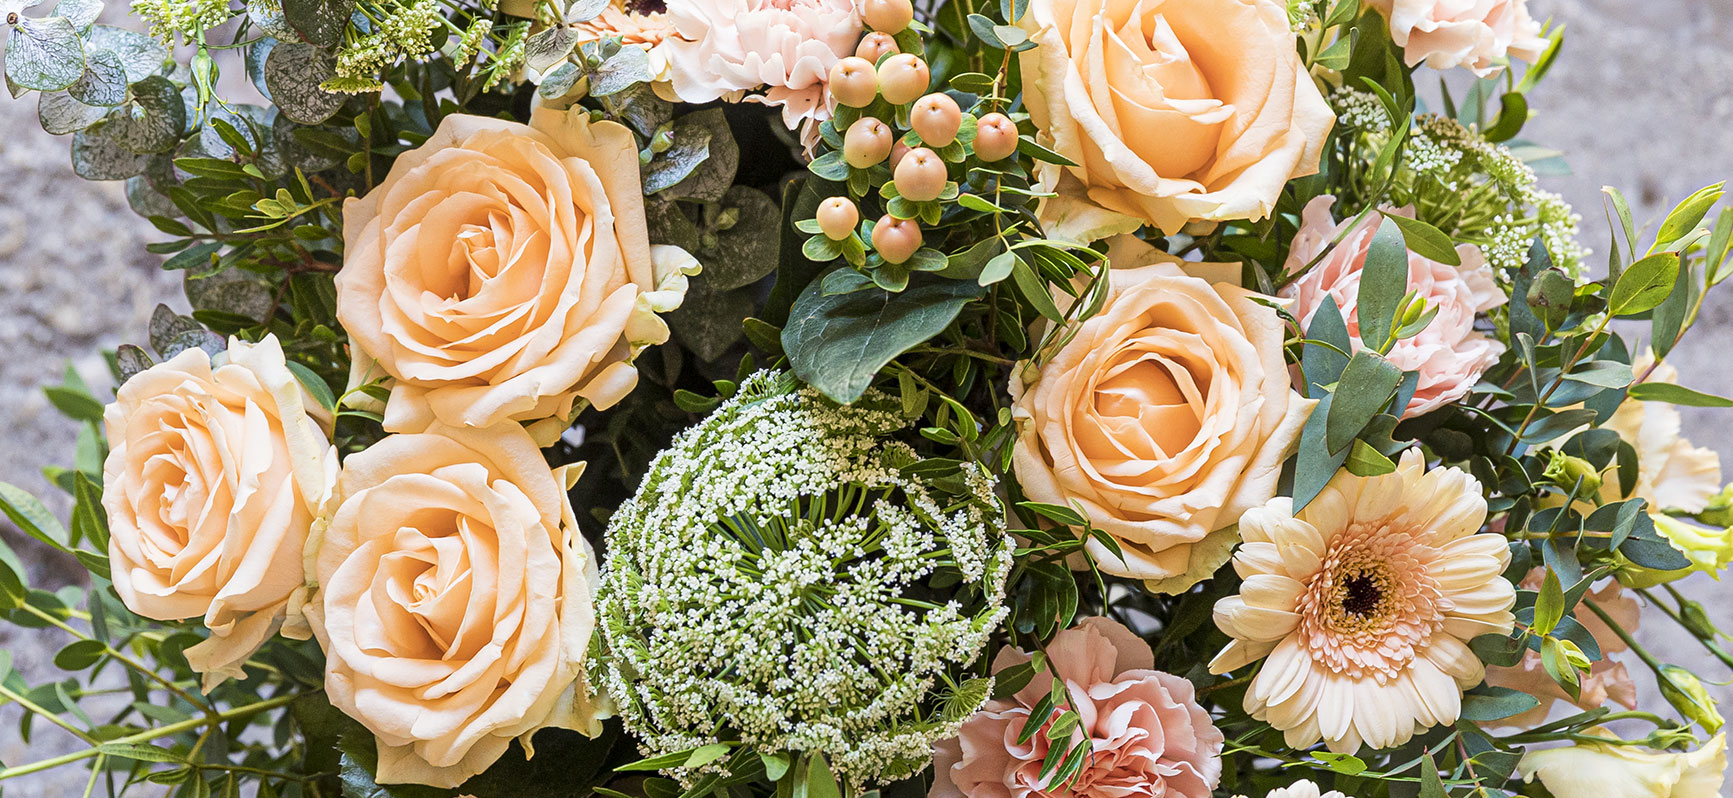 jane-luce-bouquets-header